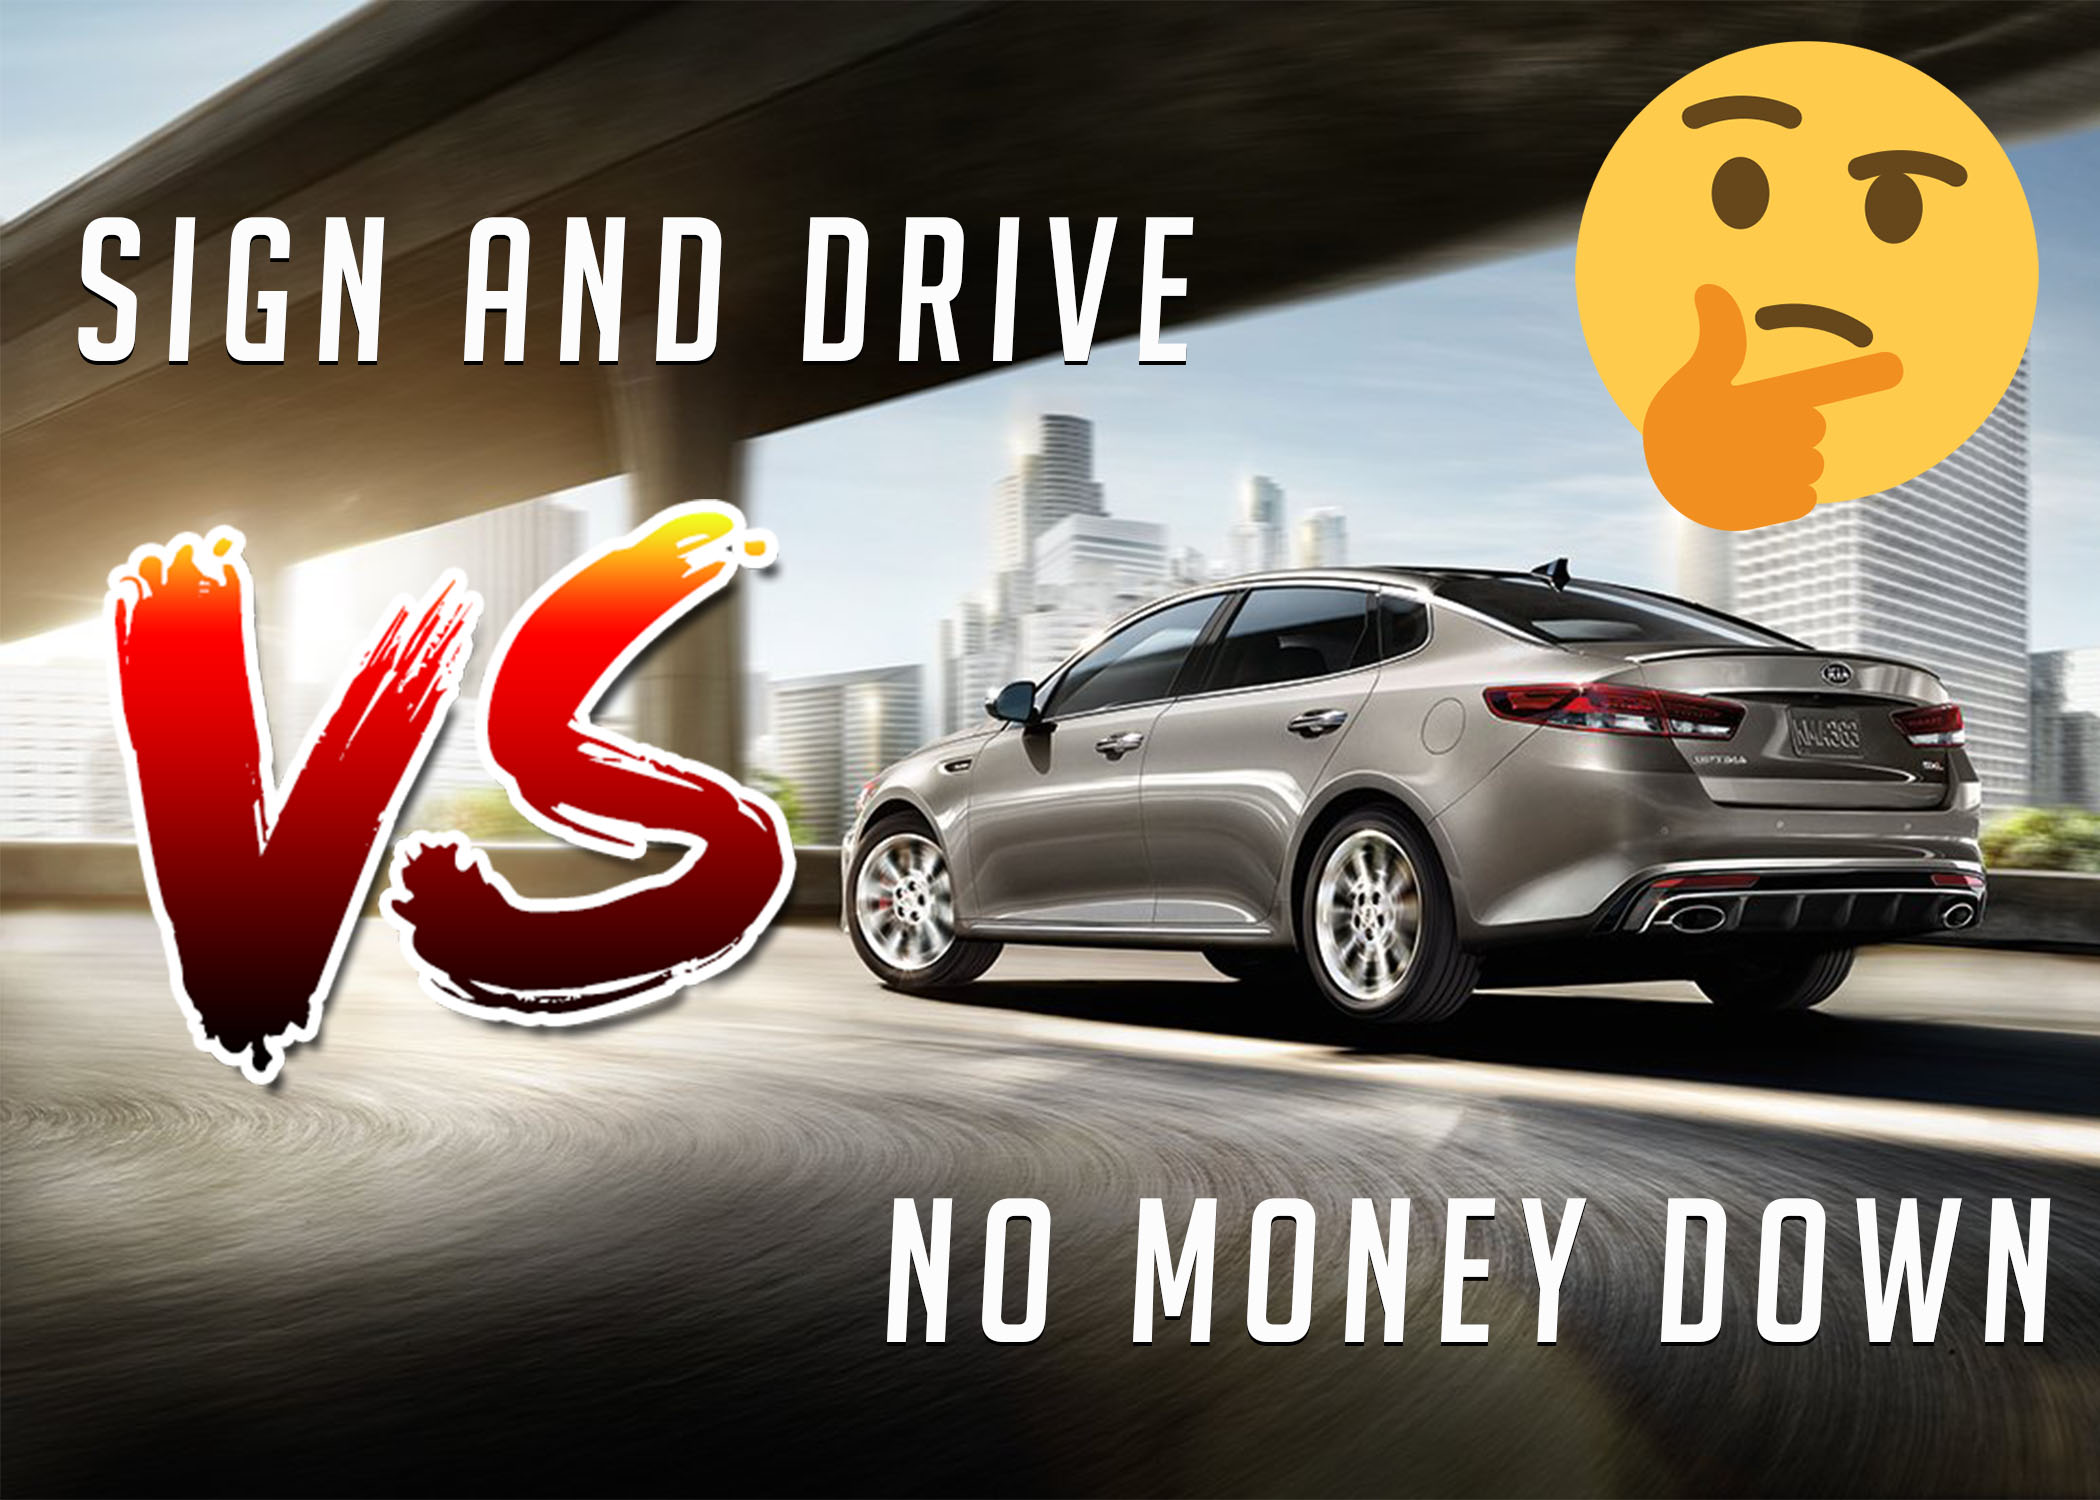 No Money Down Lease Deals >> No Money Down Vs Sign And Drive Lease Deals What S The